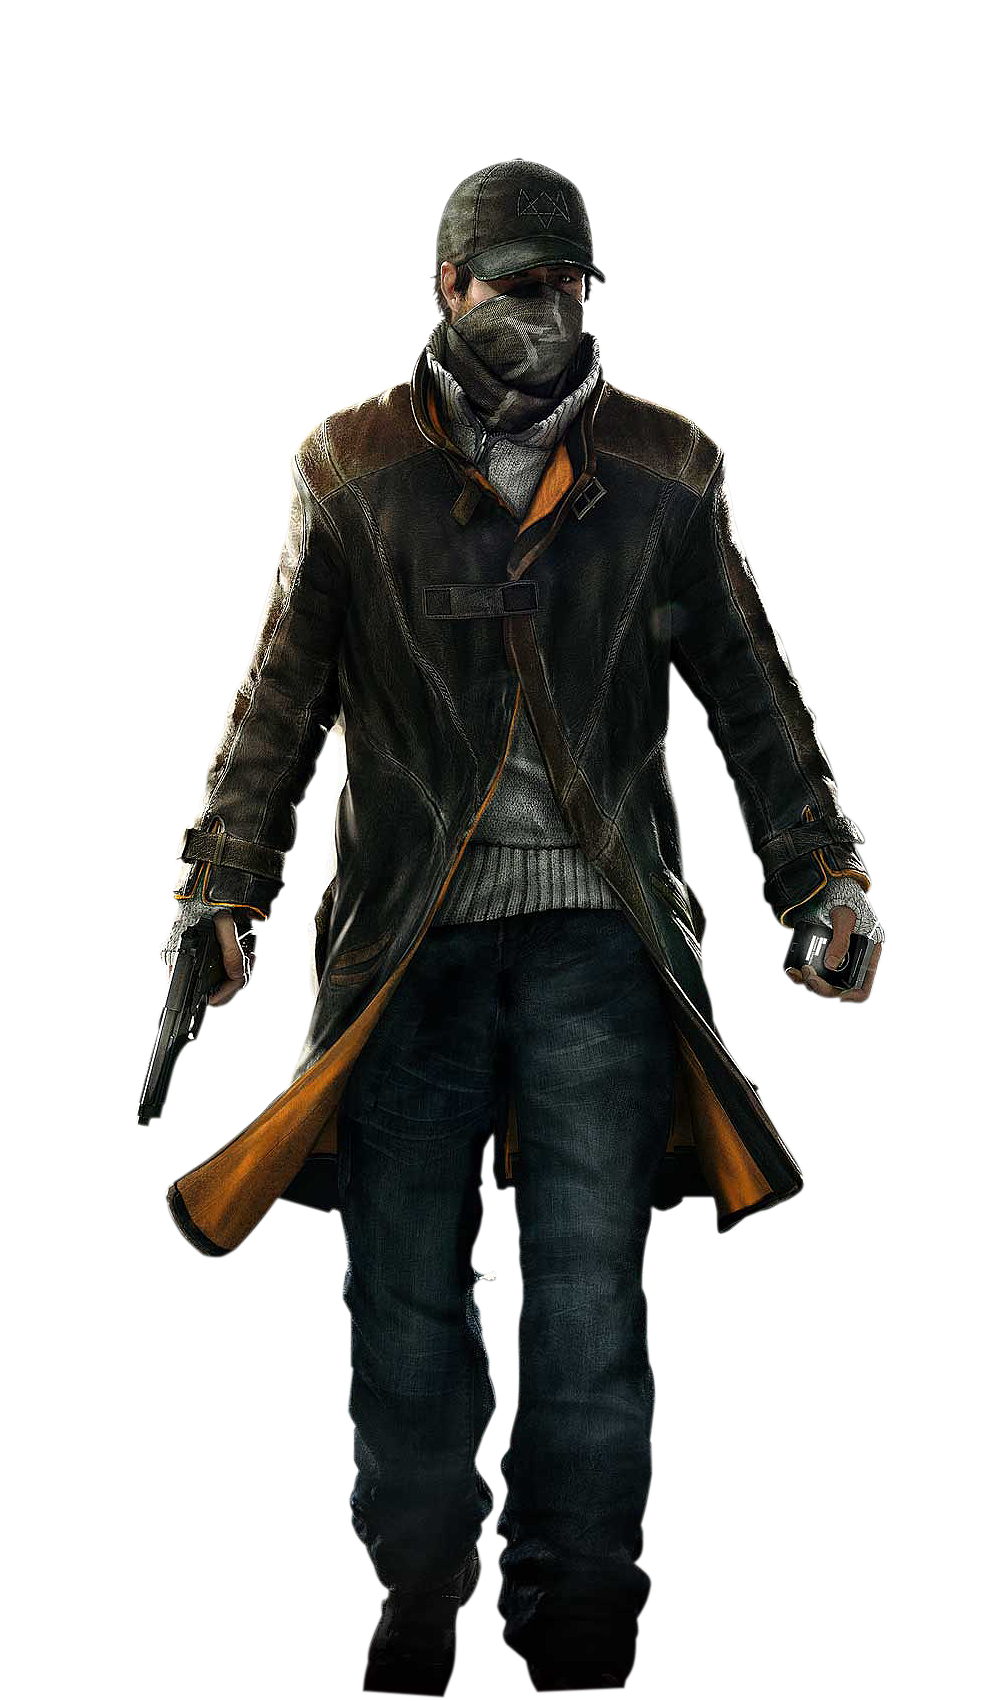 Watch Dogs Png Hd PNG Image